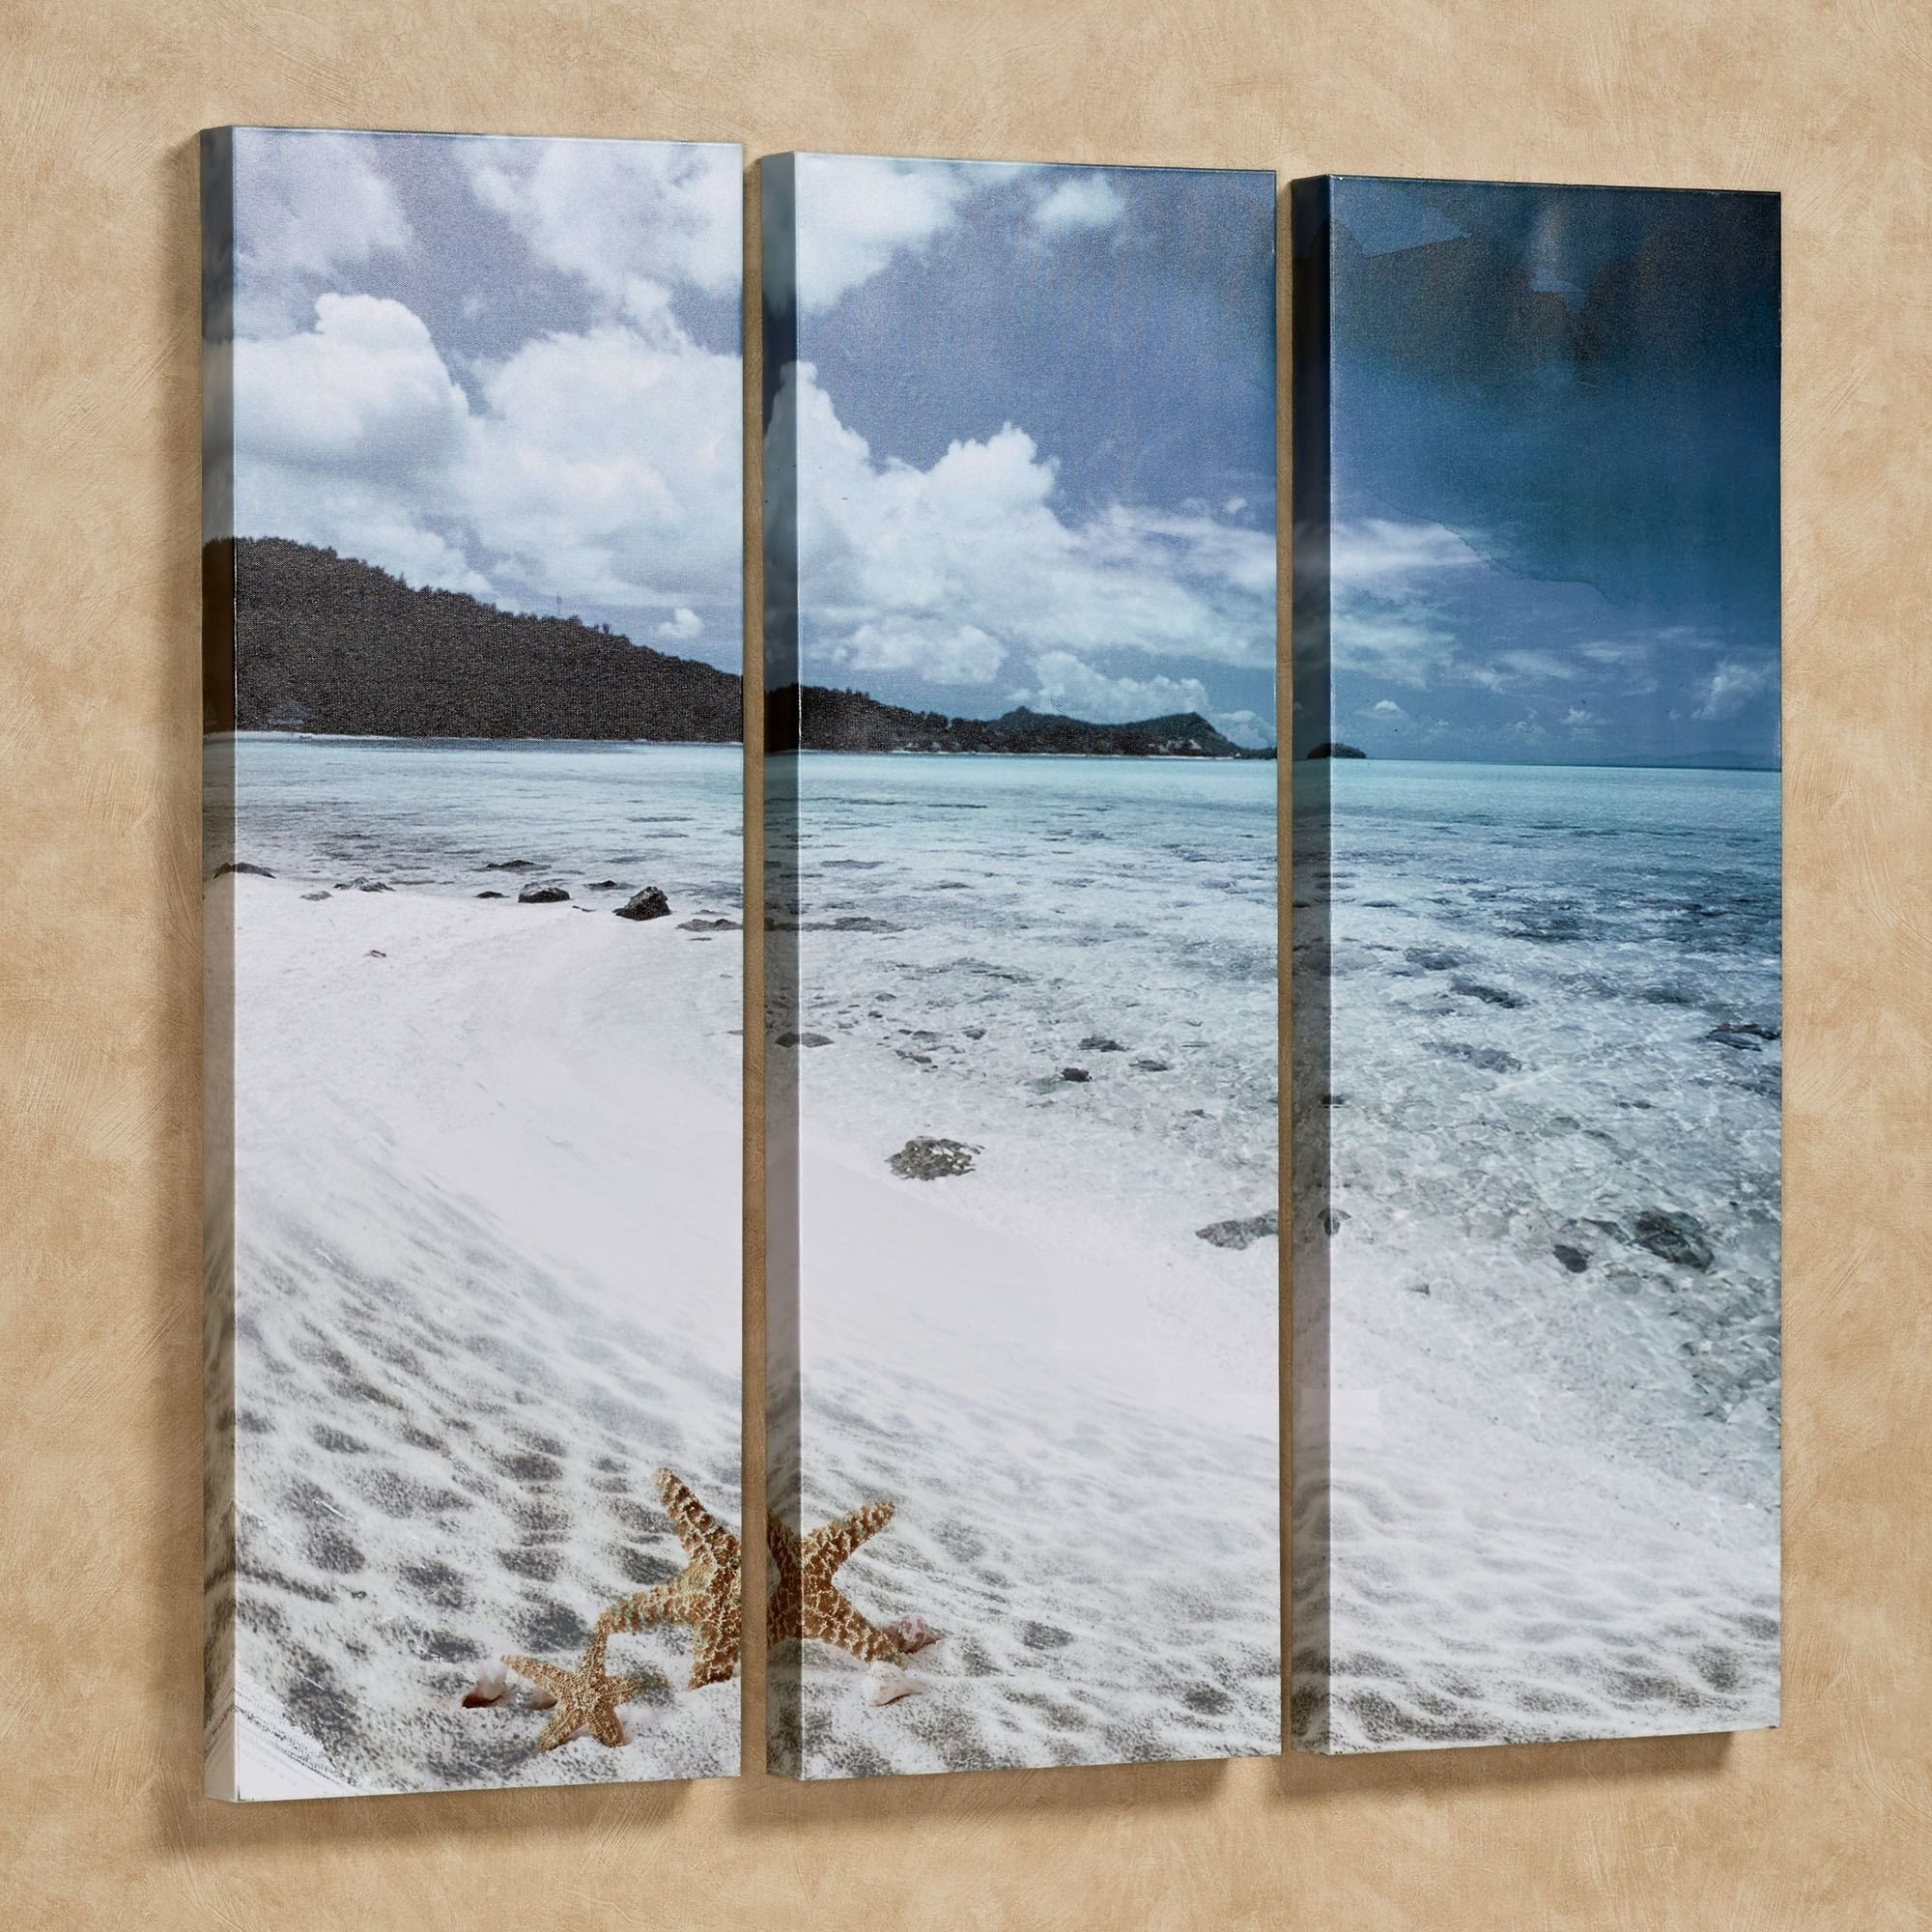 Fashionable Triptych Wall Art In Paradise Beach Triptych Canvas Wall Art Set (View 7 of 15)